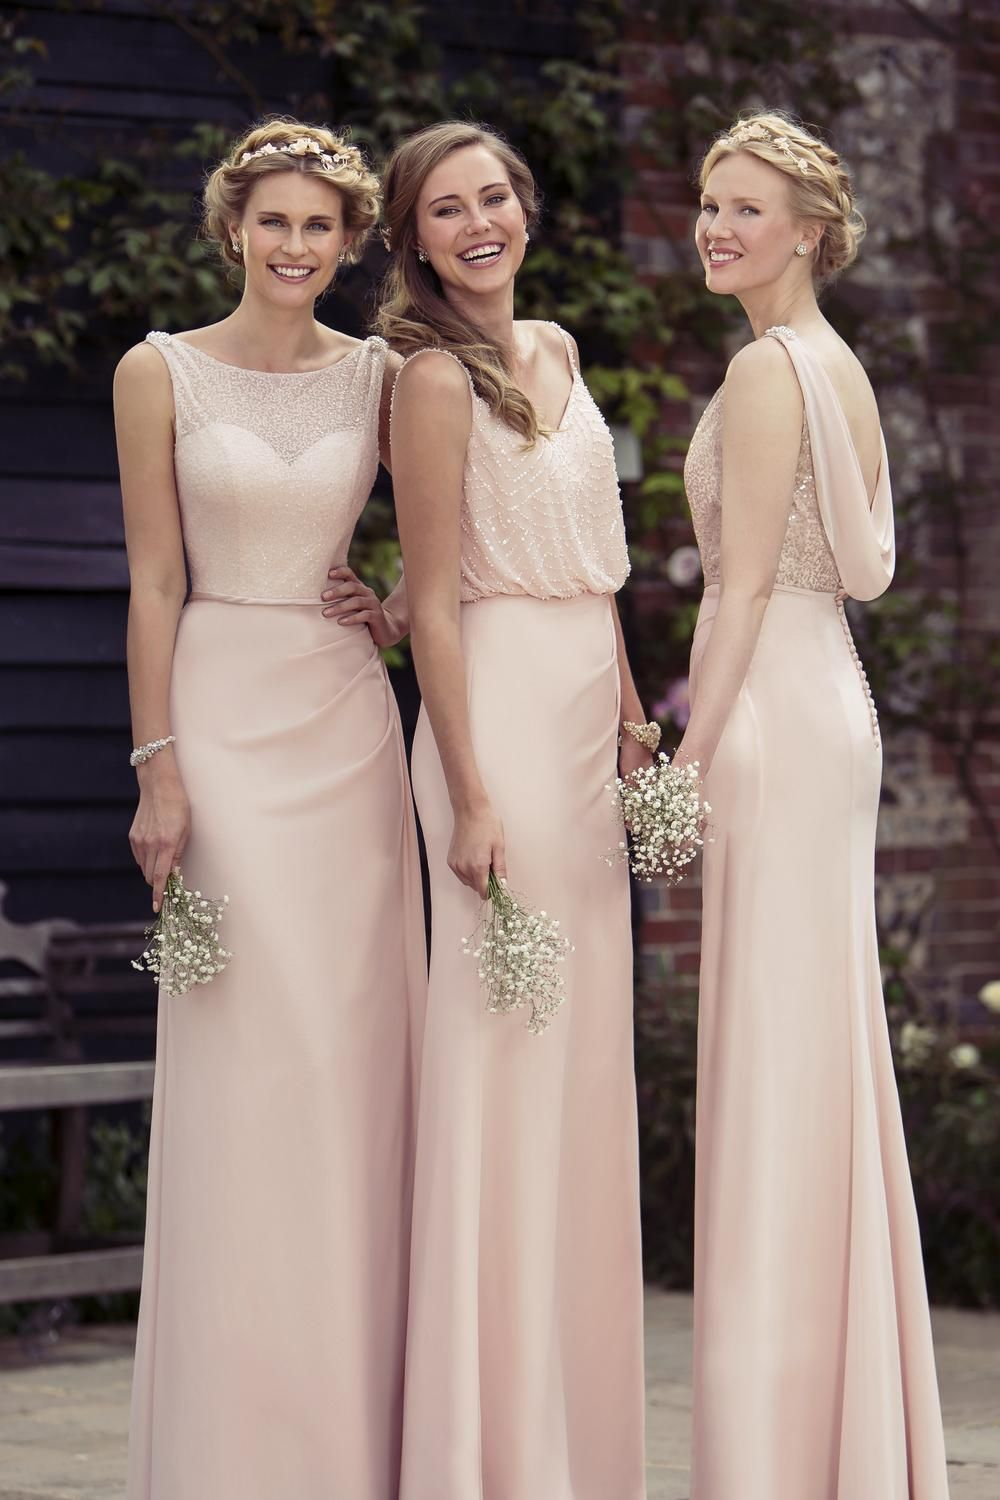 Lori G Wedding Dresses : Bridesmaids dresses lori g bridal